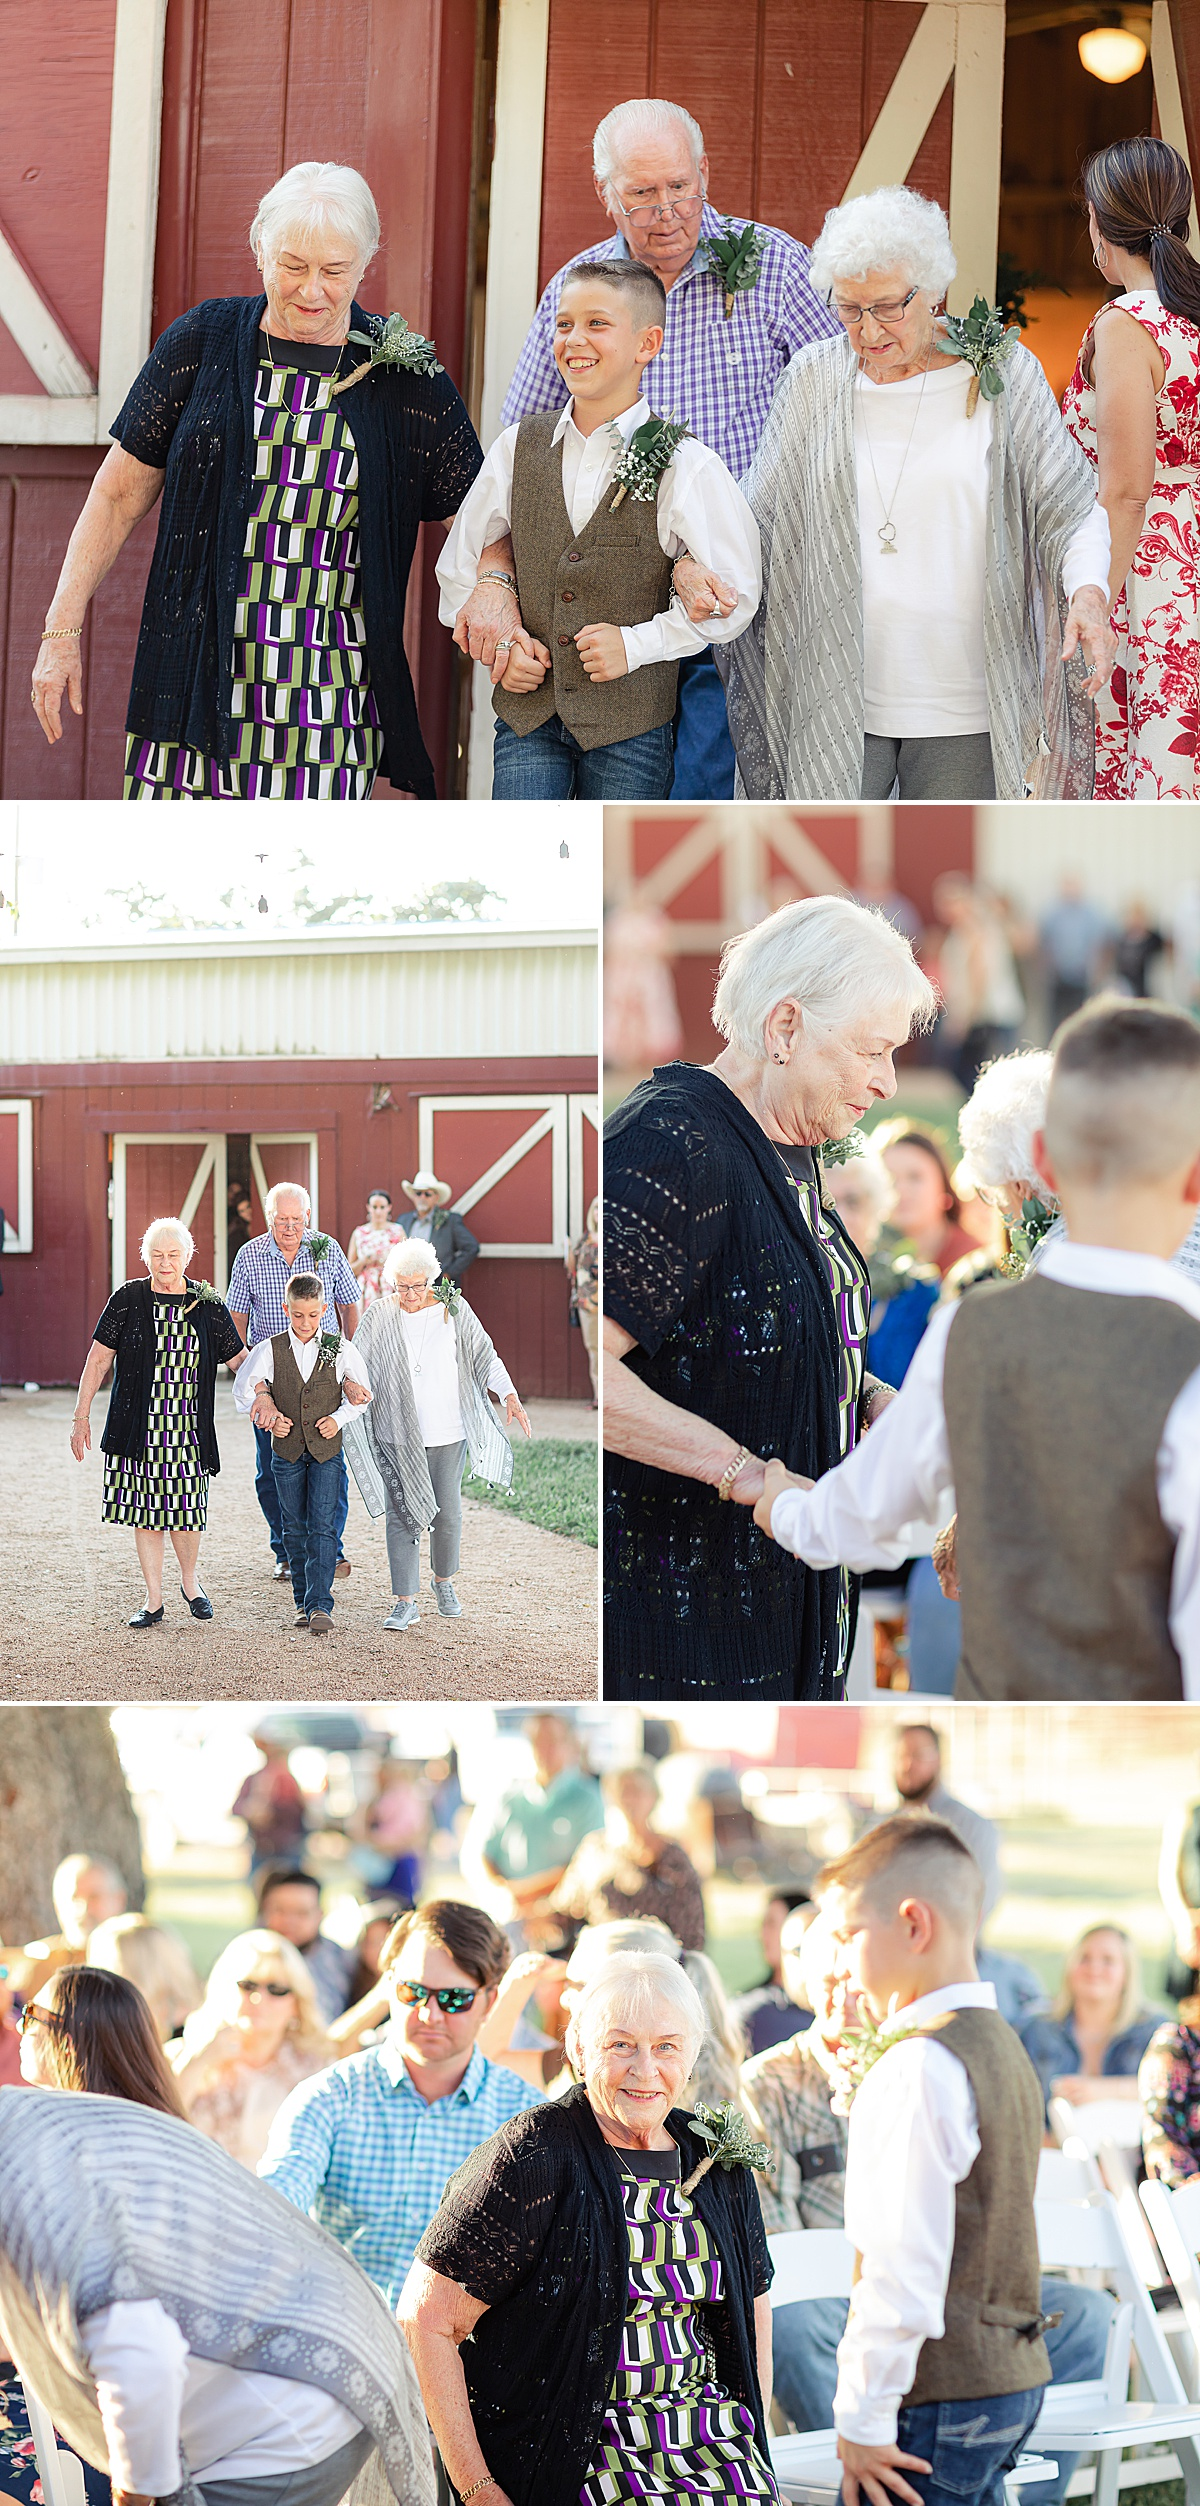 Rustic-Texas-Wedding-Hollow-Creek-Ranch-Carly-Barton-Photography_0123.jpg